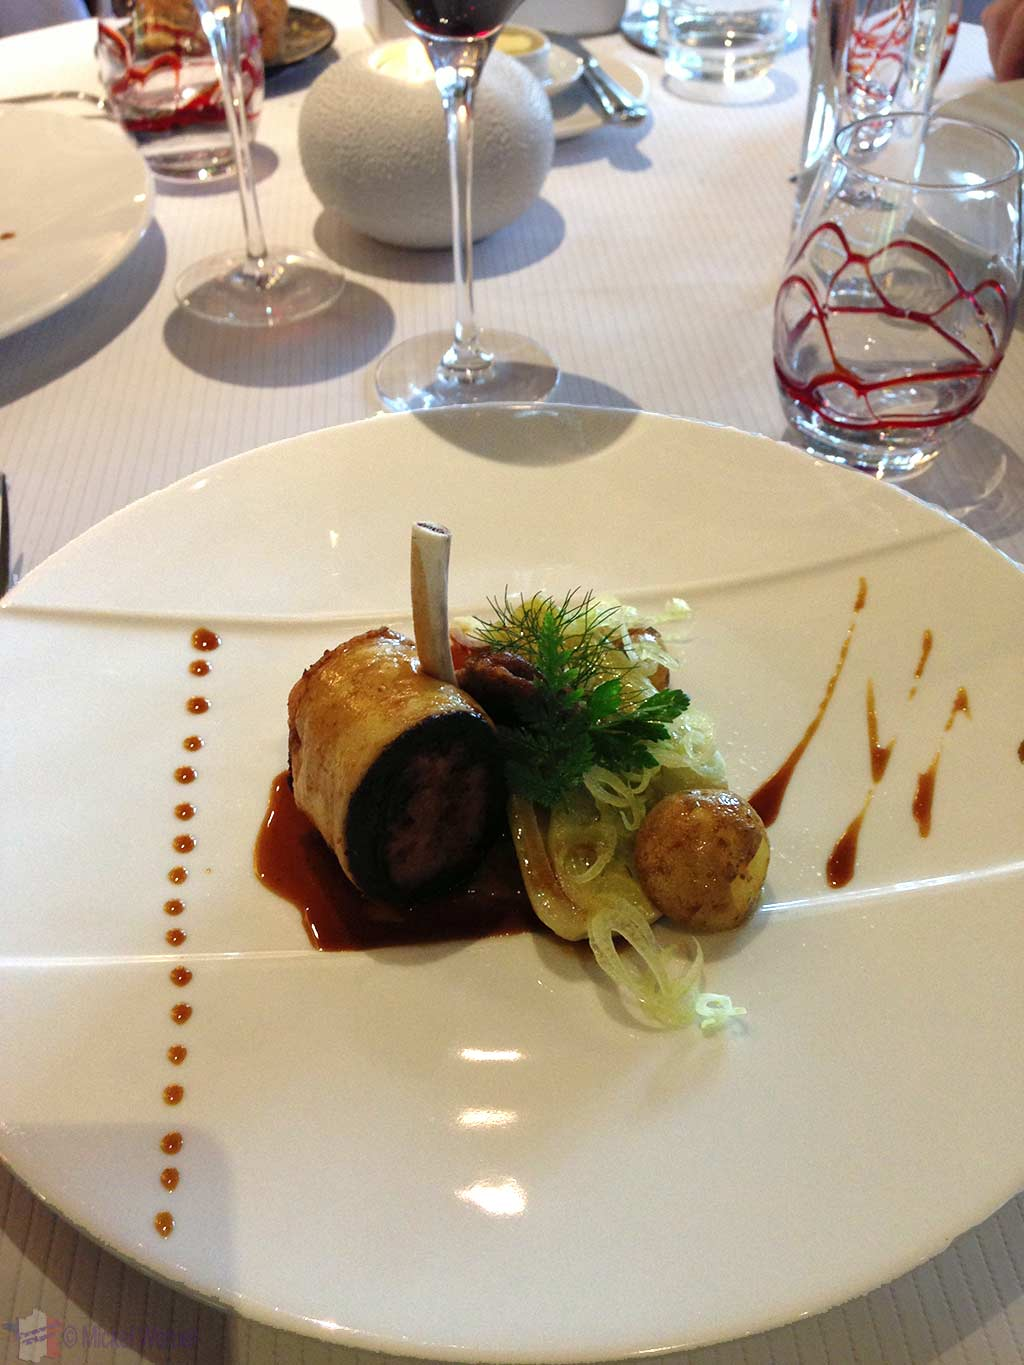 Lamb chops at the Le Bec Au Cauchois/Pierre Caillet restaurant in Valmont, Normandy